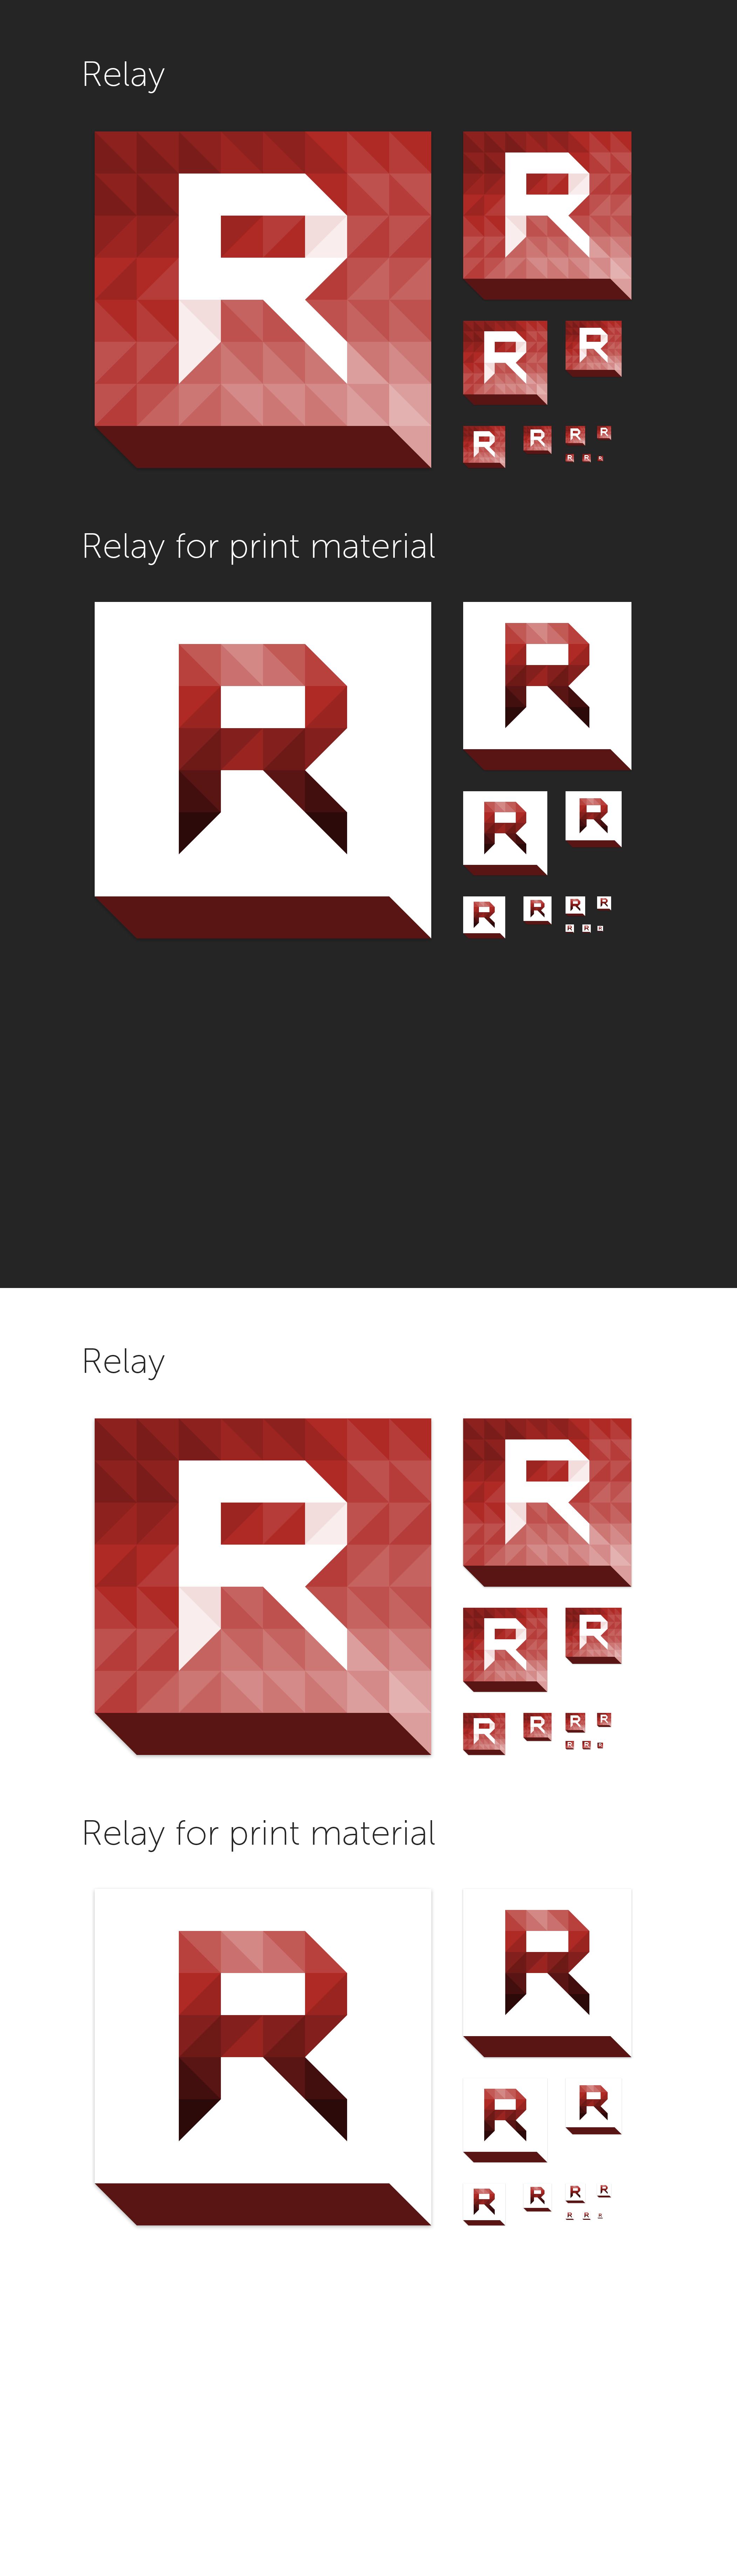 RelayIcon.png